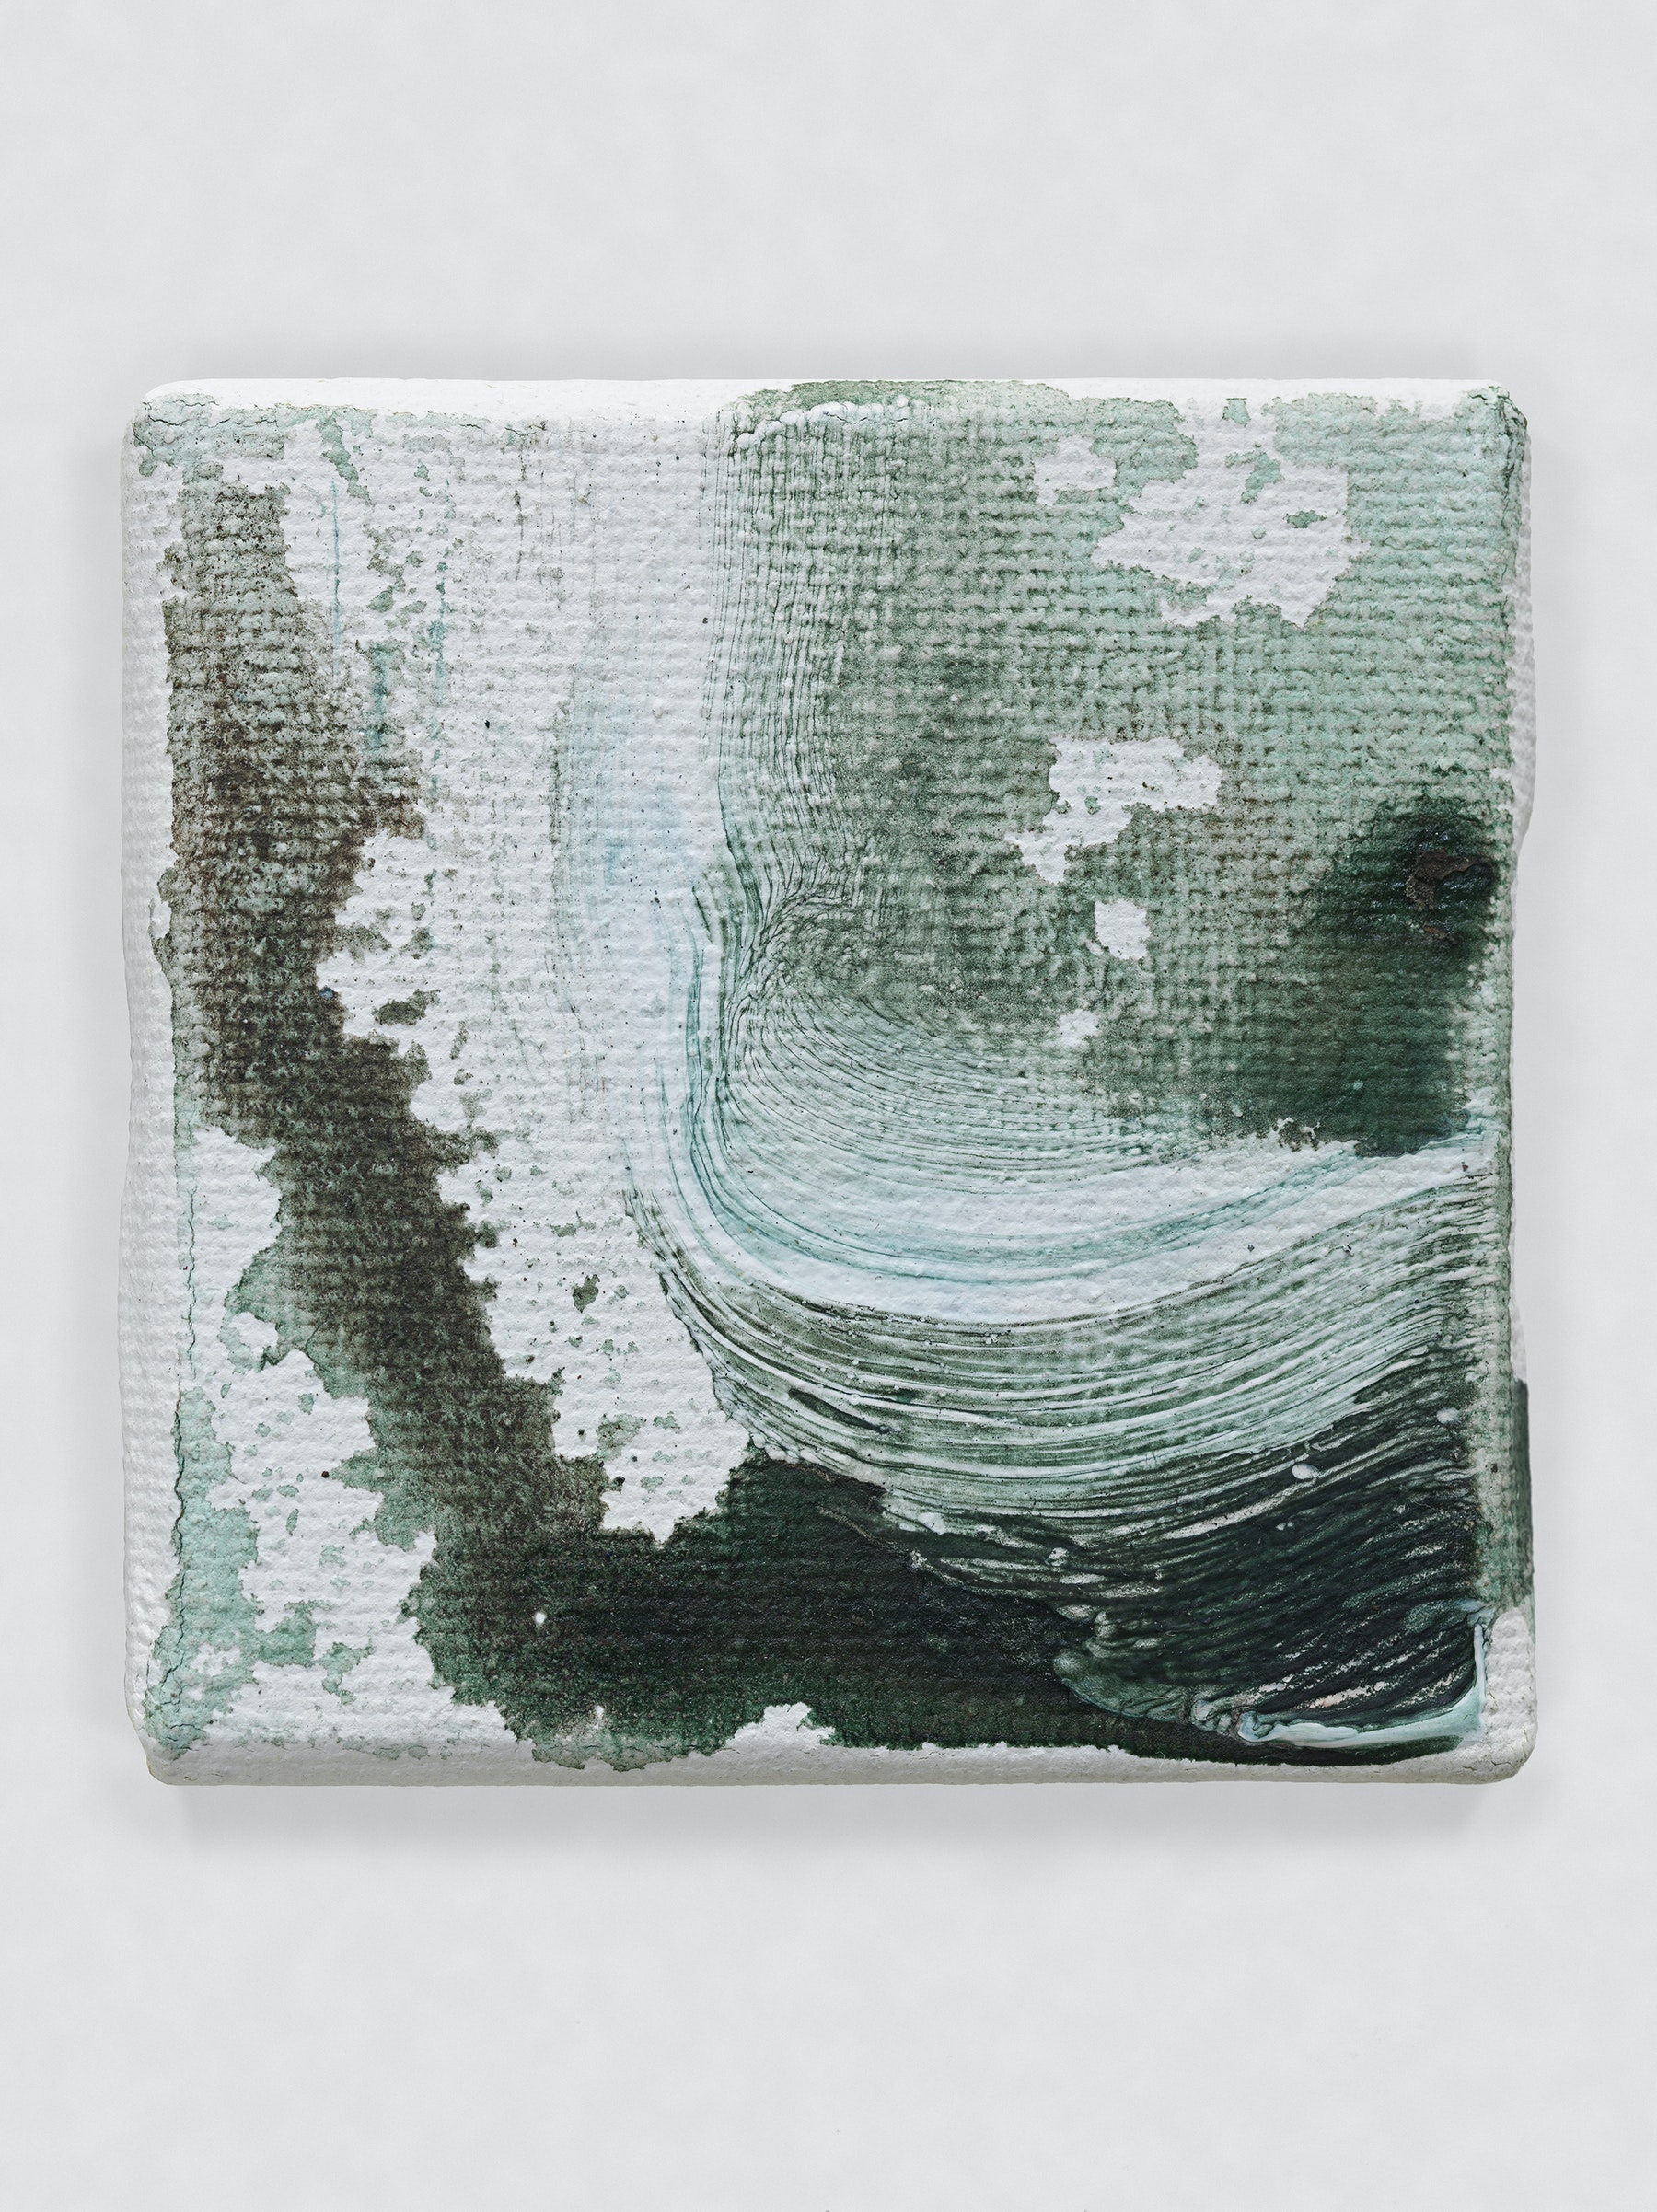 """Louise Fishman """"UNTITLED,"""" 2014 Oil on canvas 2 x 2"""" [HxW] (5.08 x 5.08 cm) Inventory #FIS154 Courtesy of the artist and Vielmetter Los Angeles Photo credit: Genevieve Hanson Signed and dated on verso"""